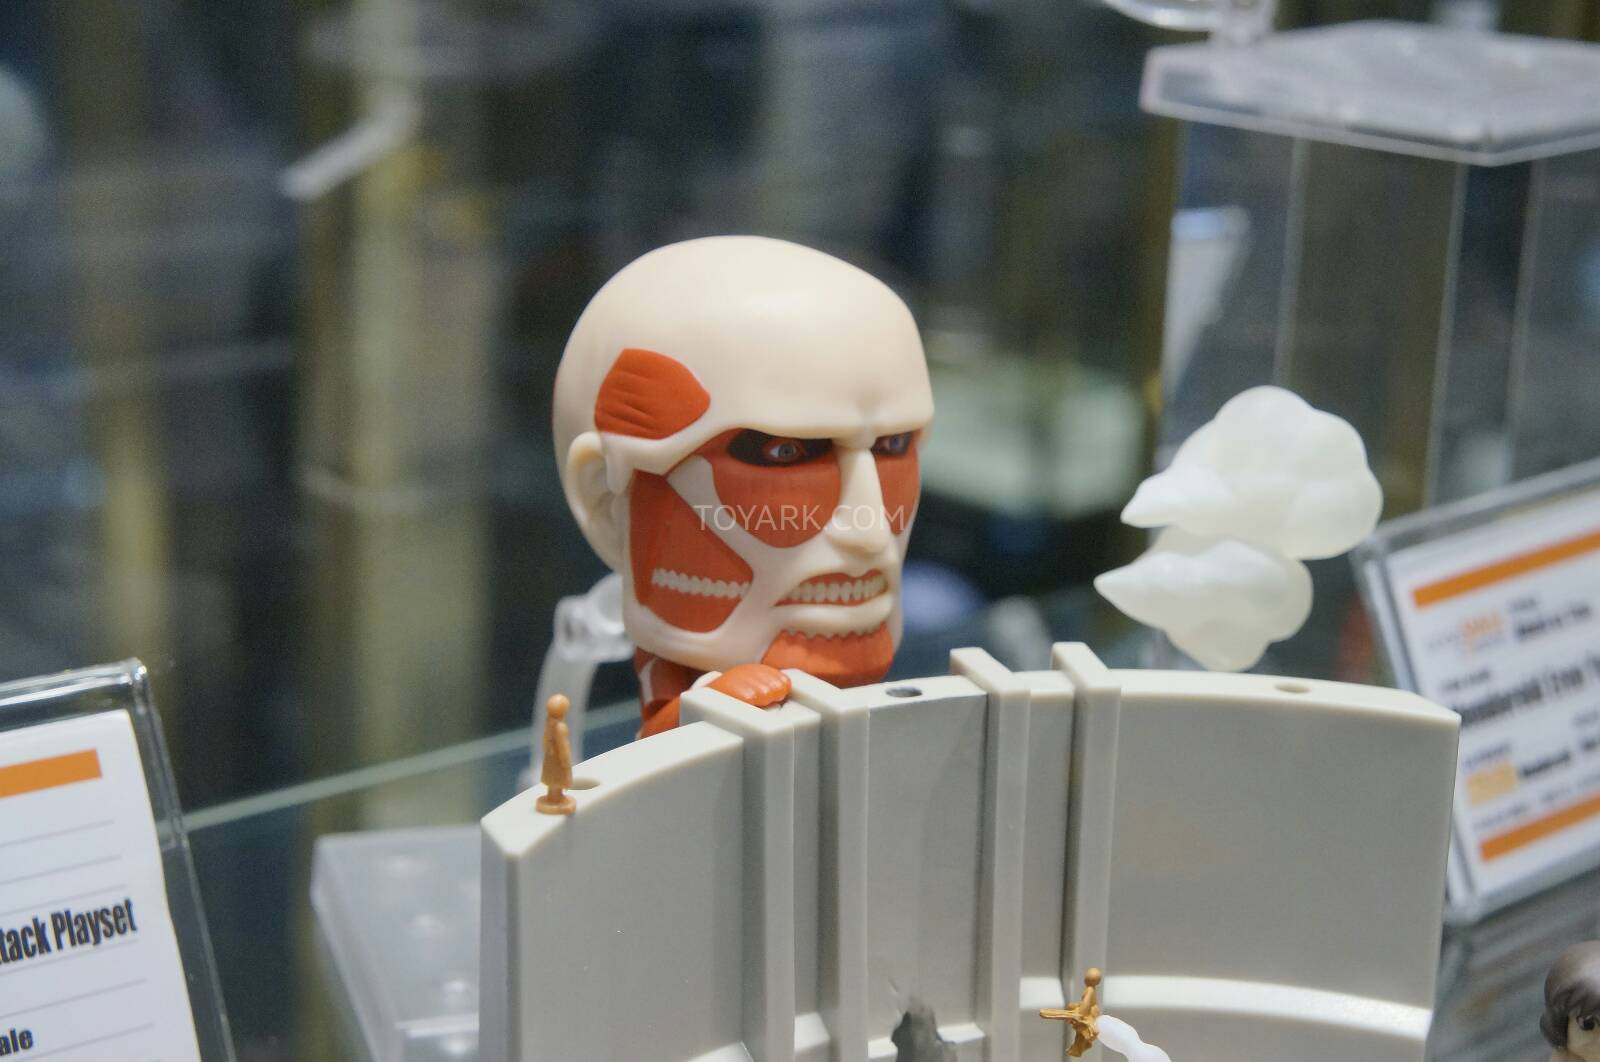 [EVENTO] Toy Fair 2014 - Good Smile Company / Max Factory / Phat Company / FREEing Toy-Fair-2014-Good-Smile-and-Max-Factory-Display-030